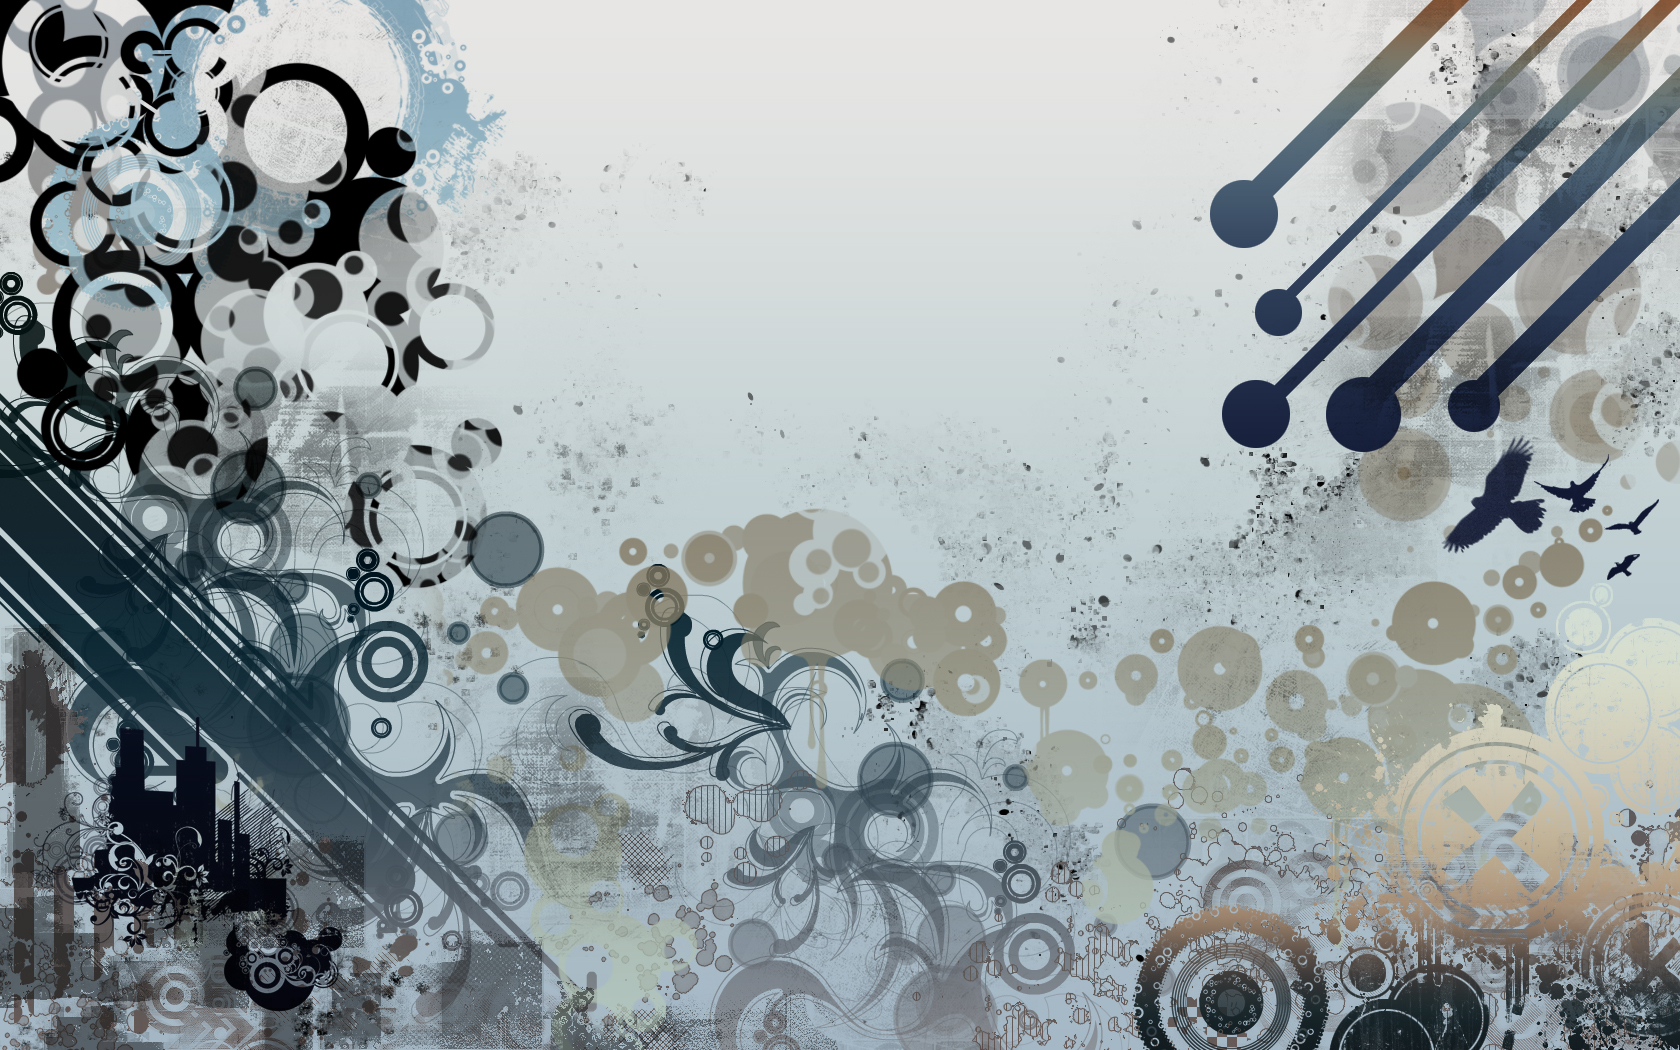 50 Tremendous Grunge Wallpapers For Your Desktop   noupe 1680x1050